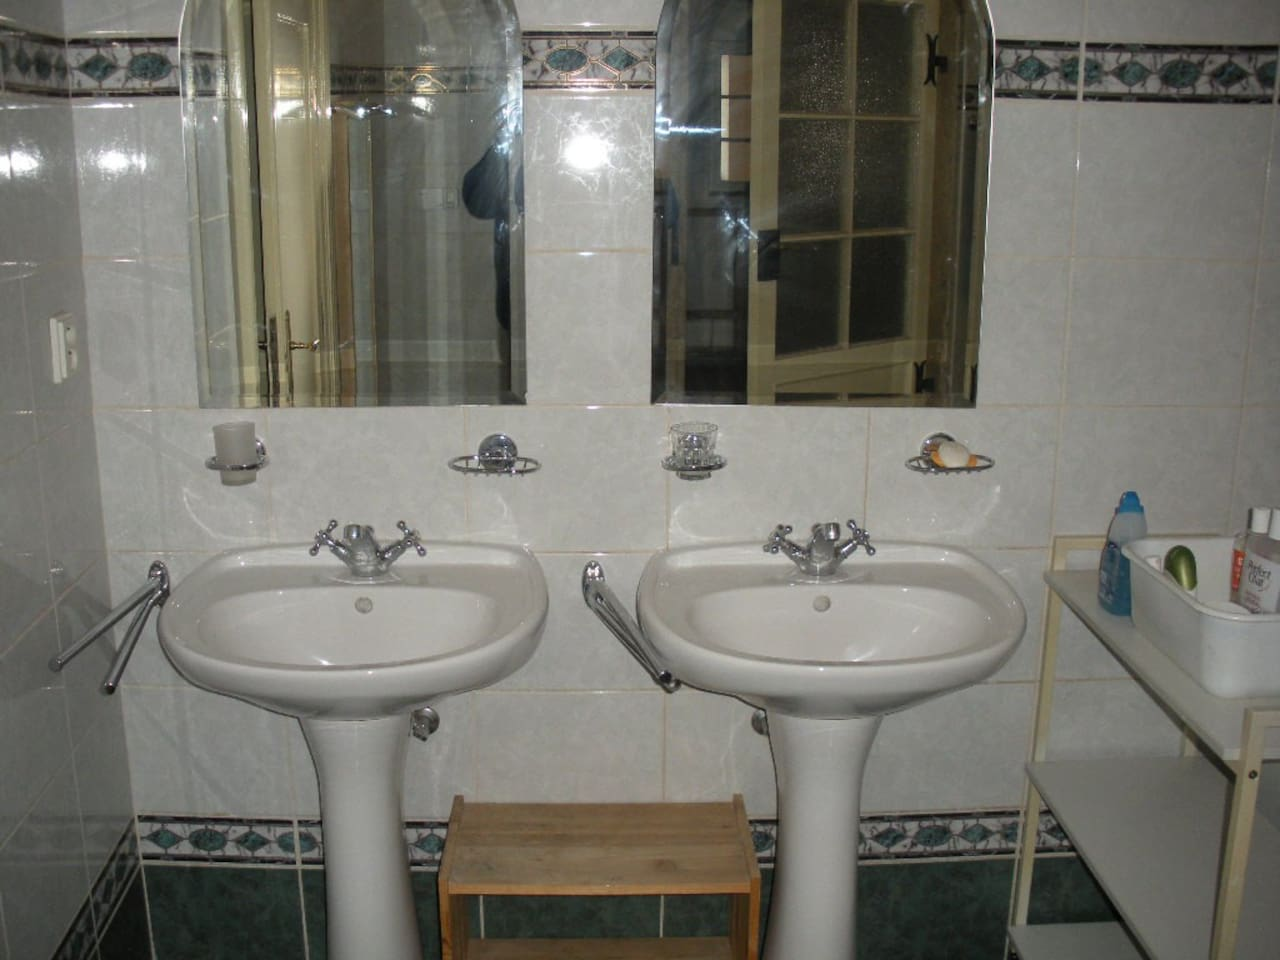 Two sinks are in the bathroom